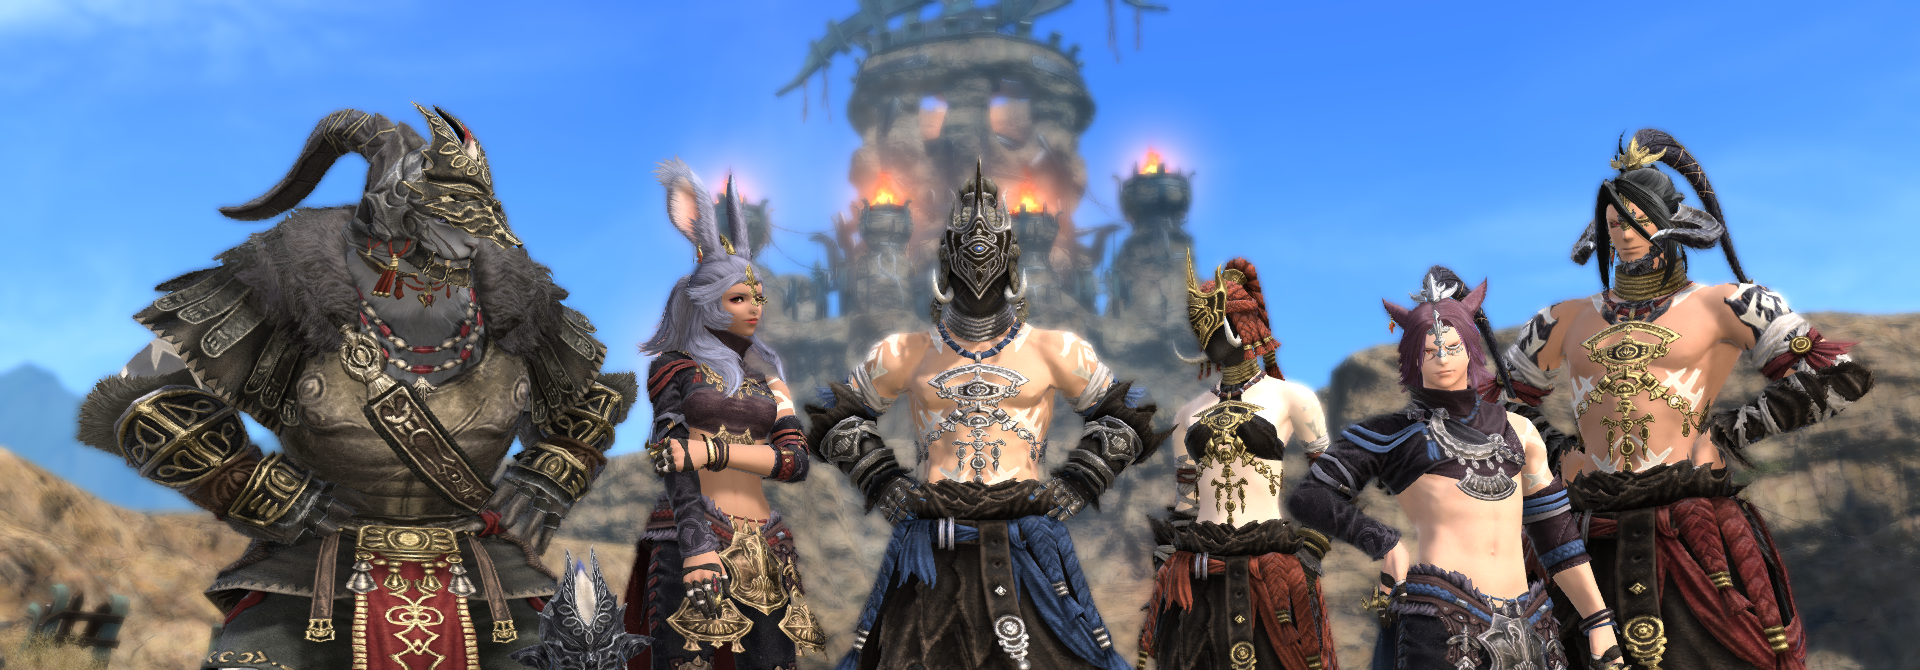 PS5 Open Beta For Final Fantasy 14 Launches Today